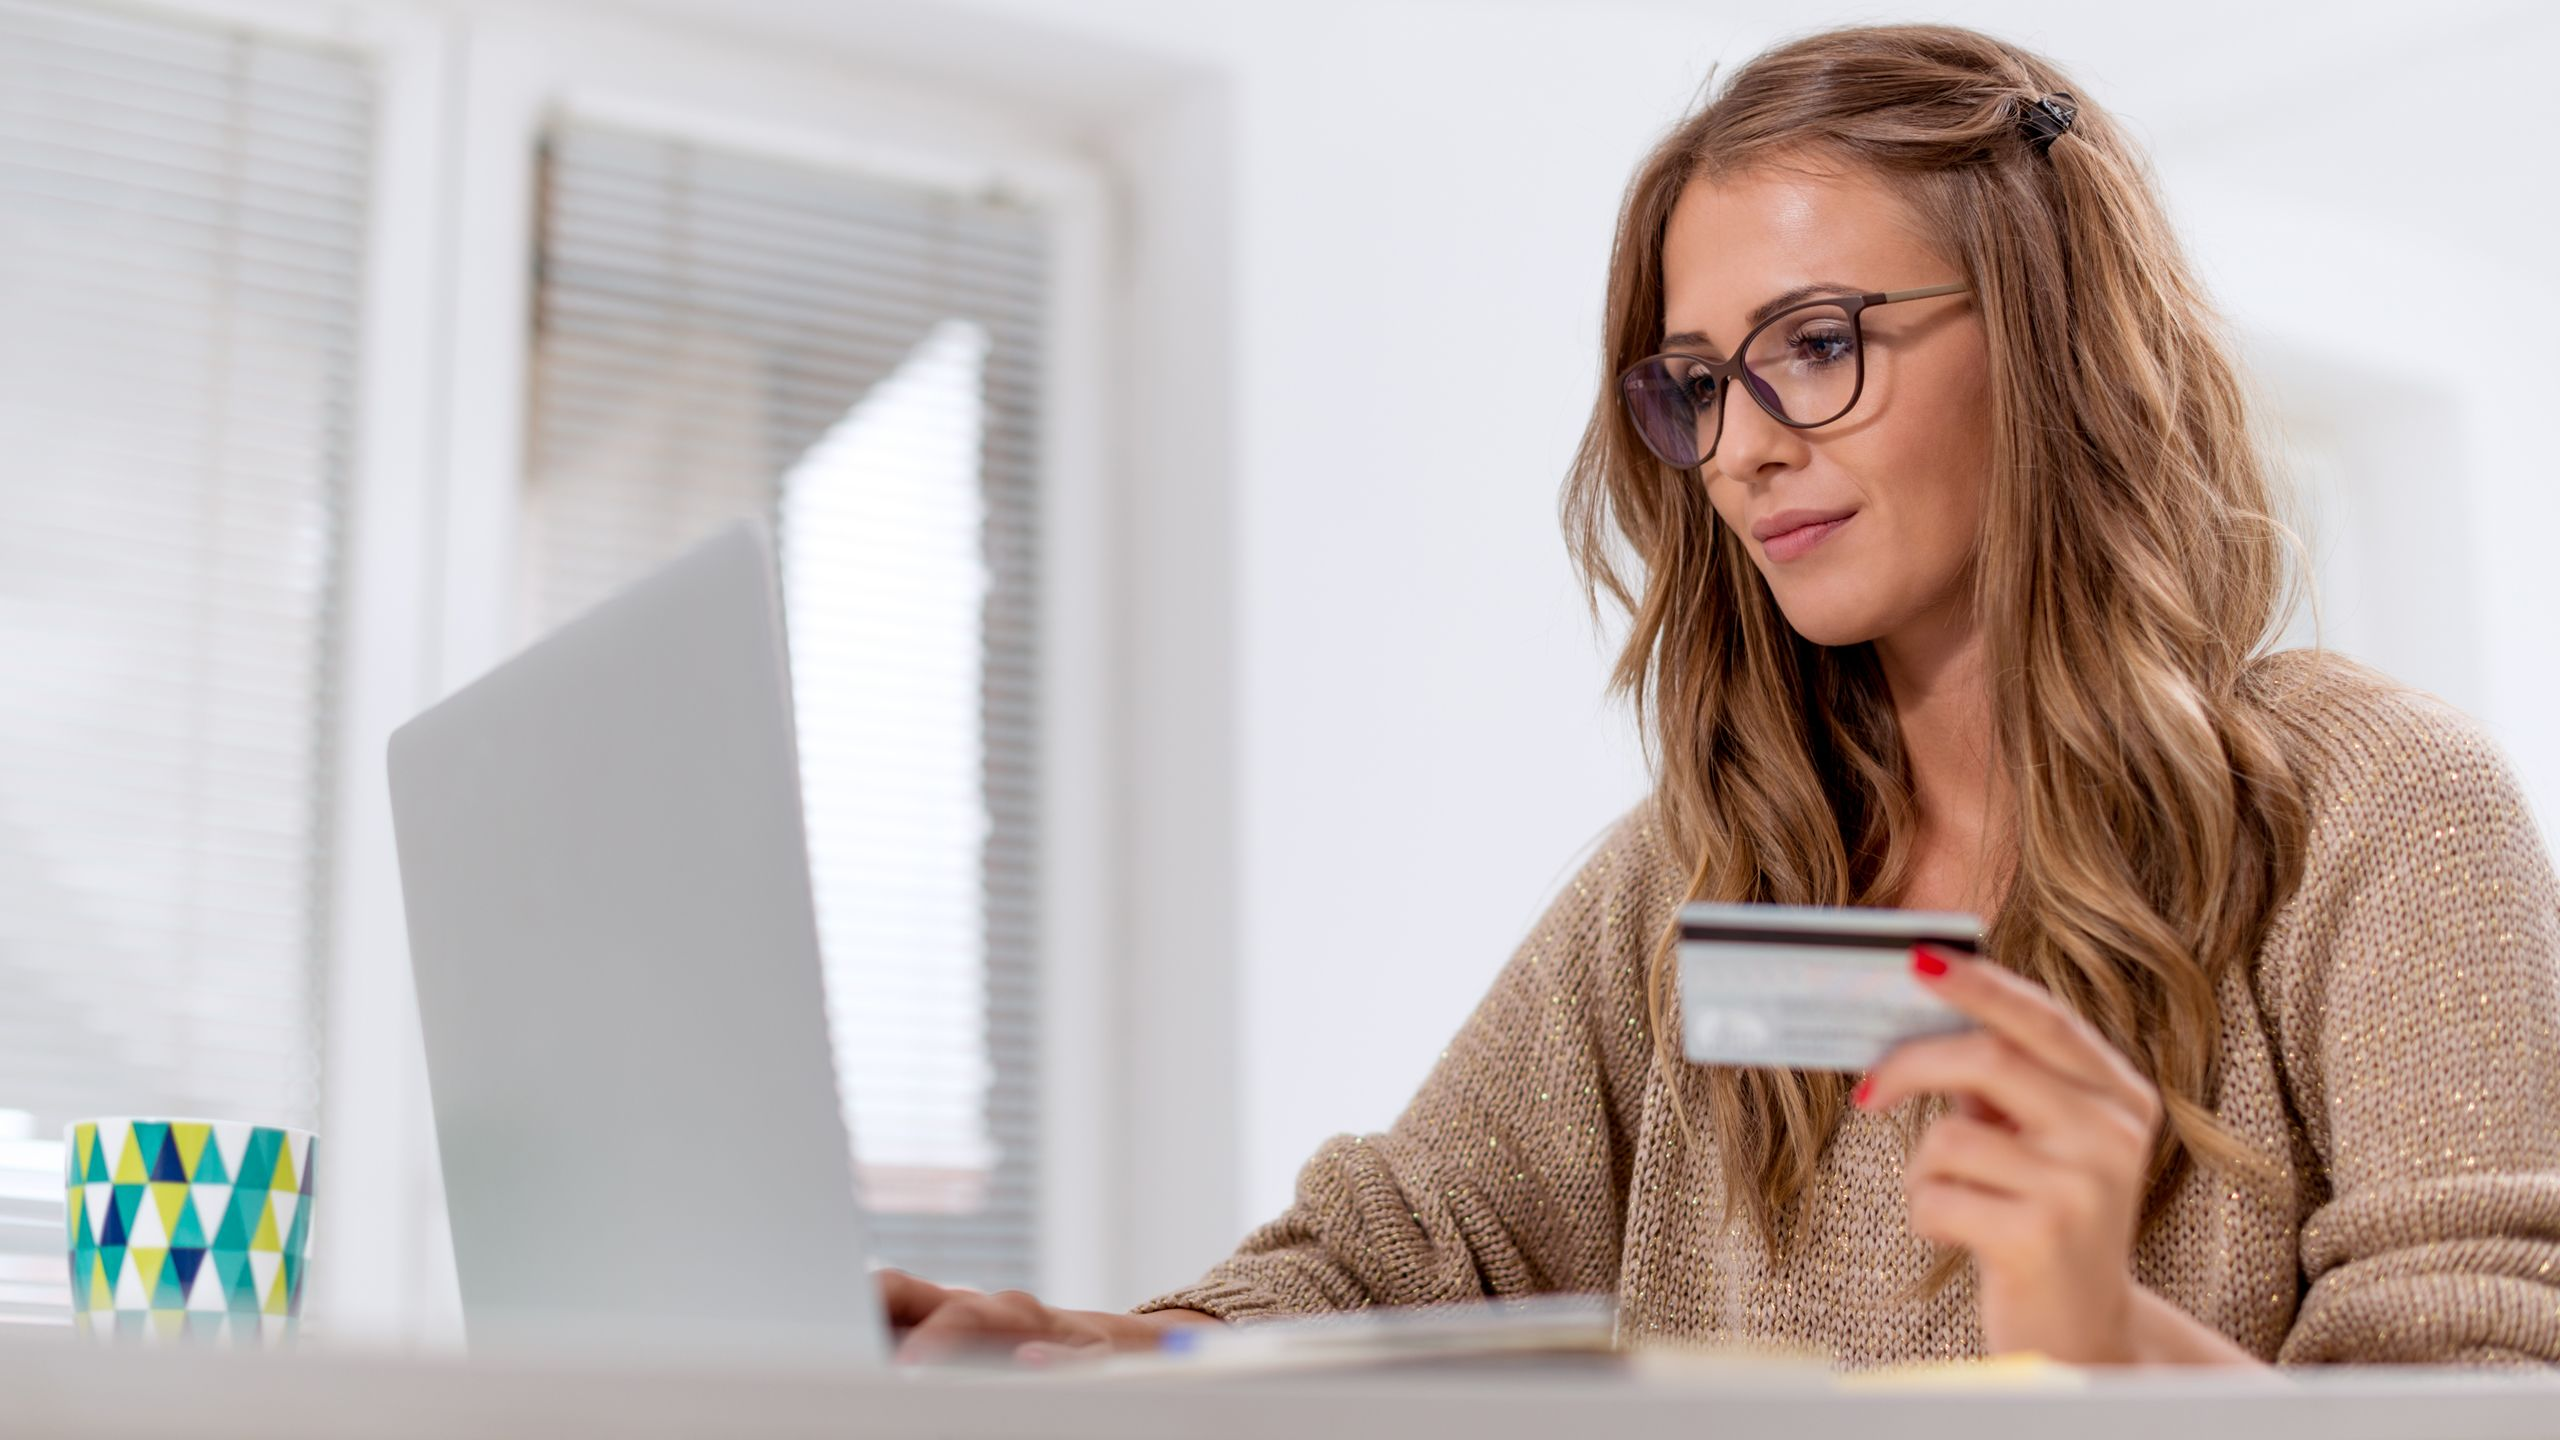 7 Ways to Spot Unwanted Charges on Your Credit Card